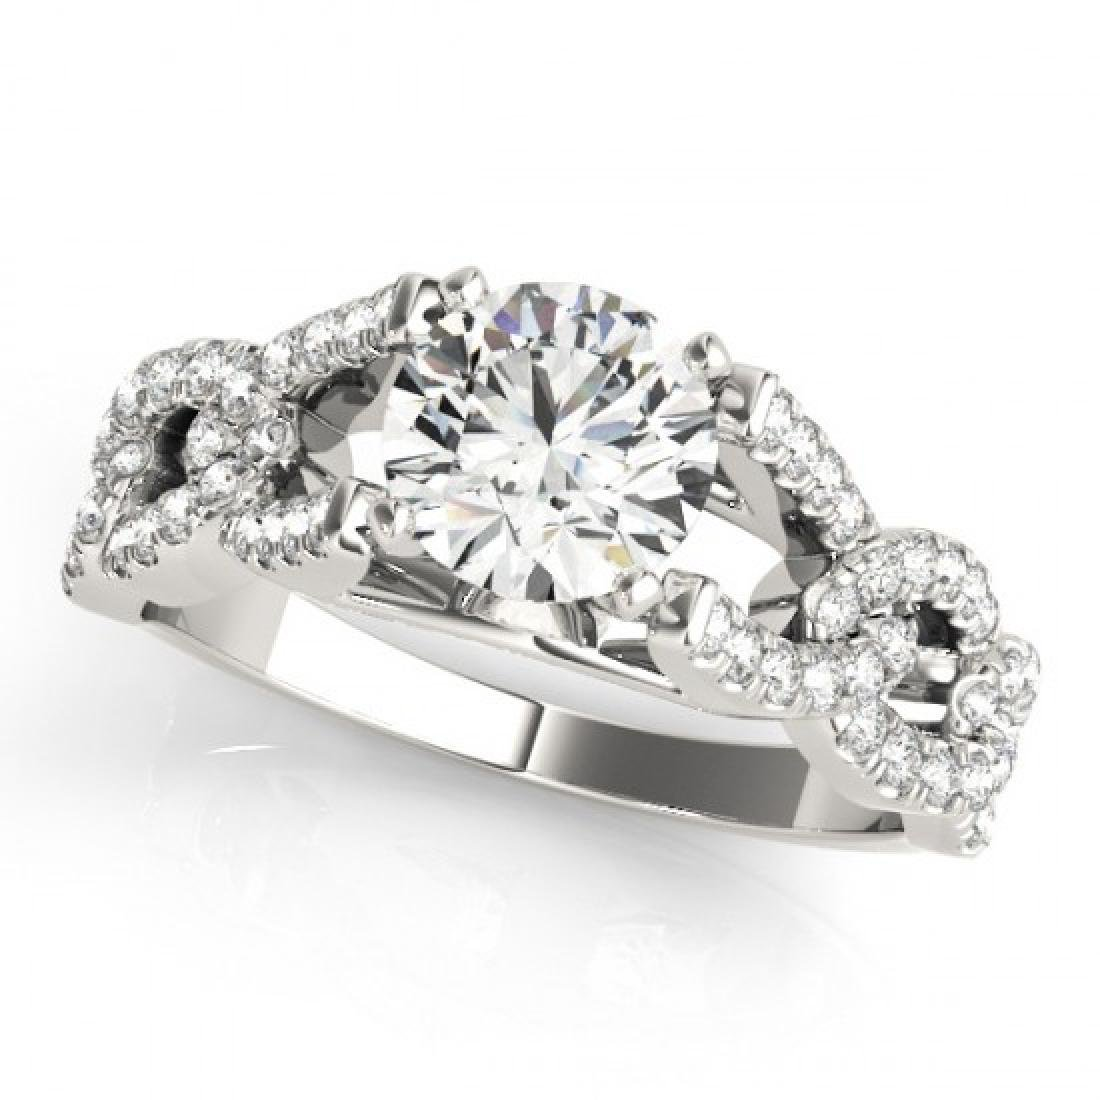 1.5 CTW Certified VS/SI Diamond Solitaire Ring 14K - 2